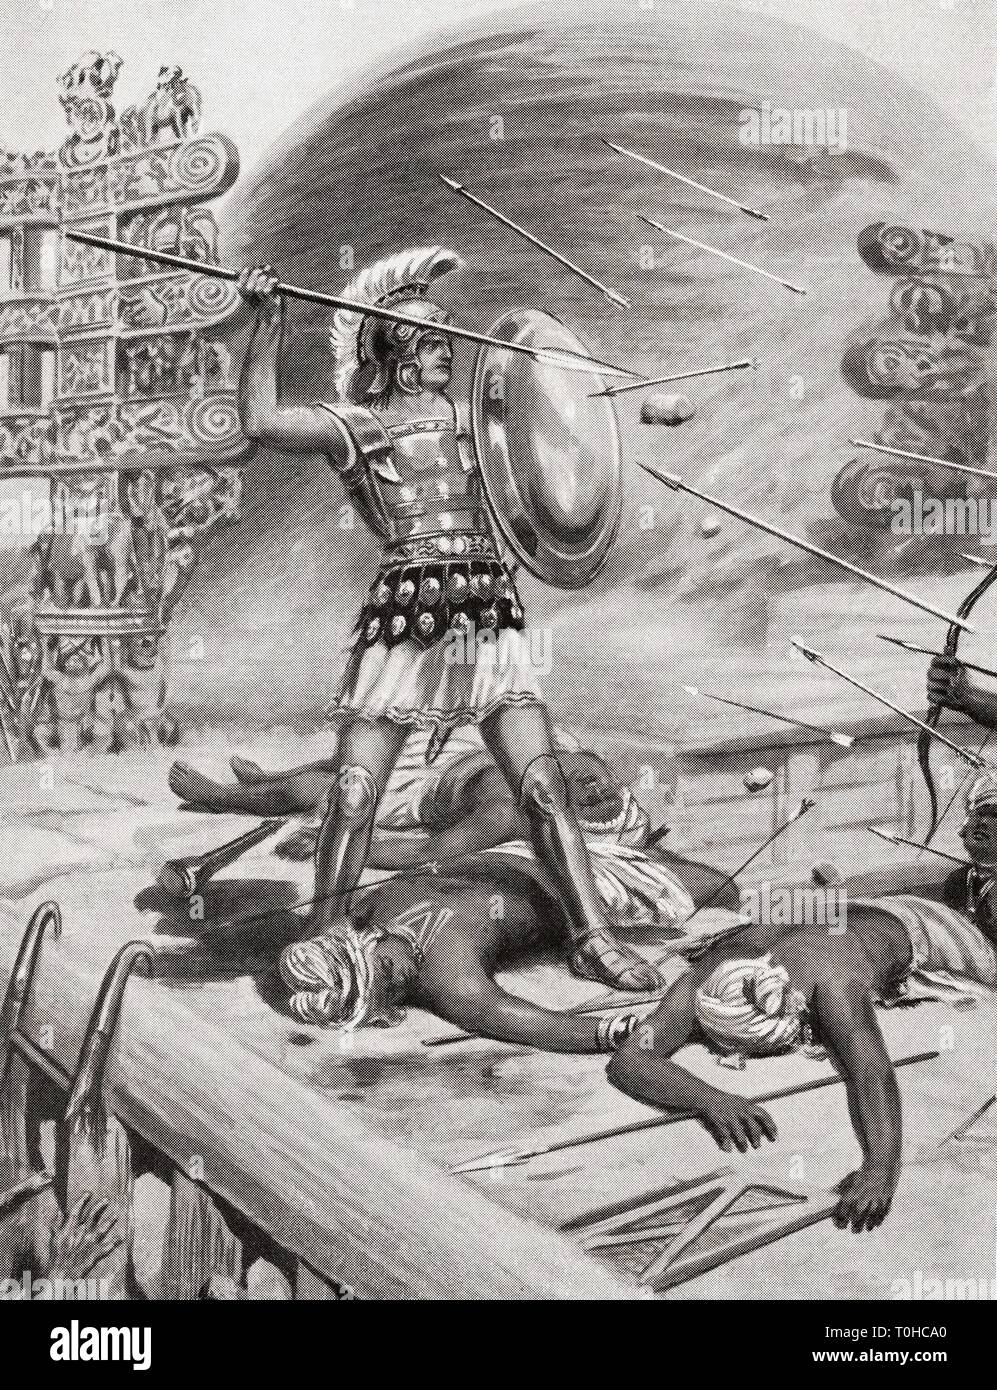 Alexander the Great fighting Assacani at fortified city of Massage, India - Stock Image